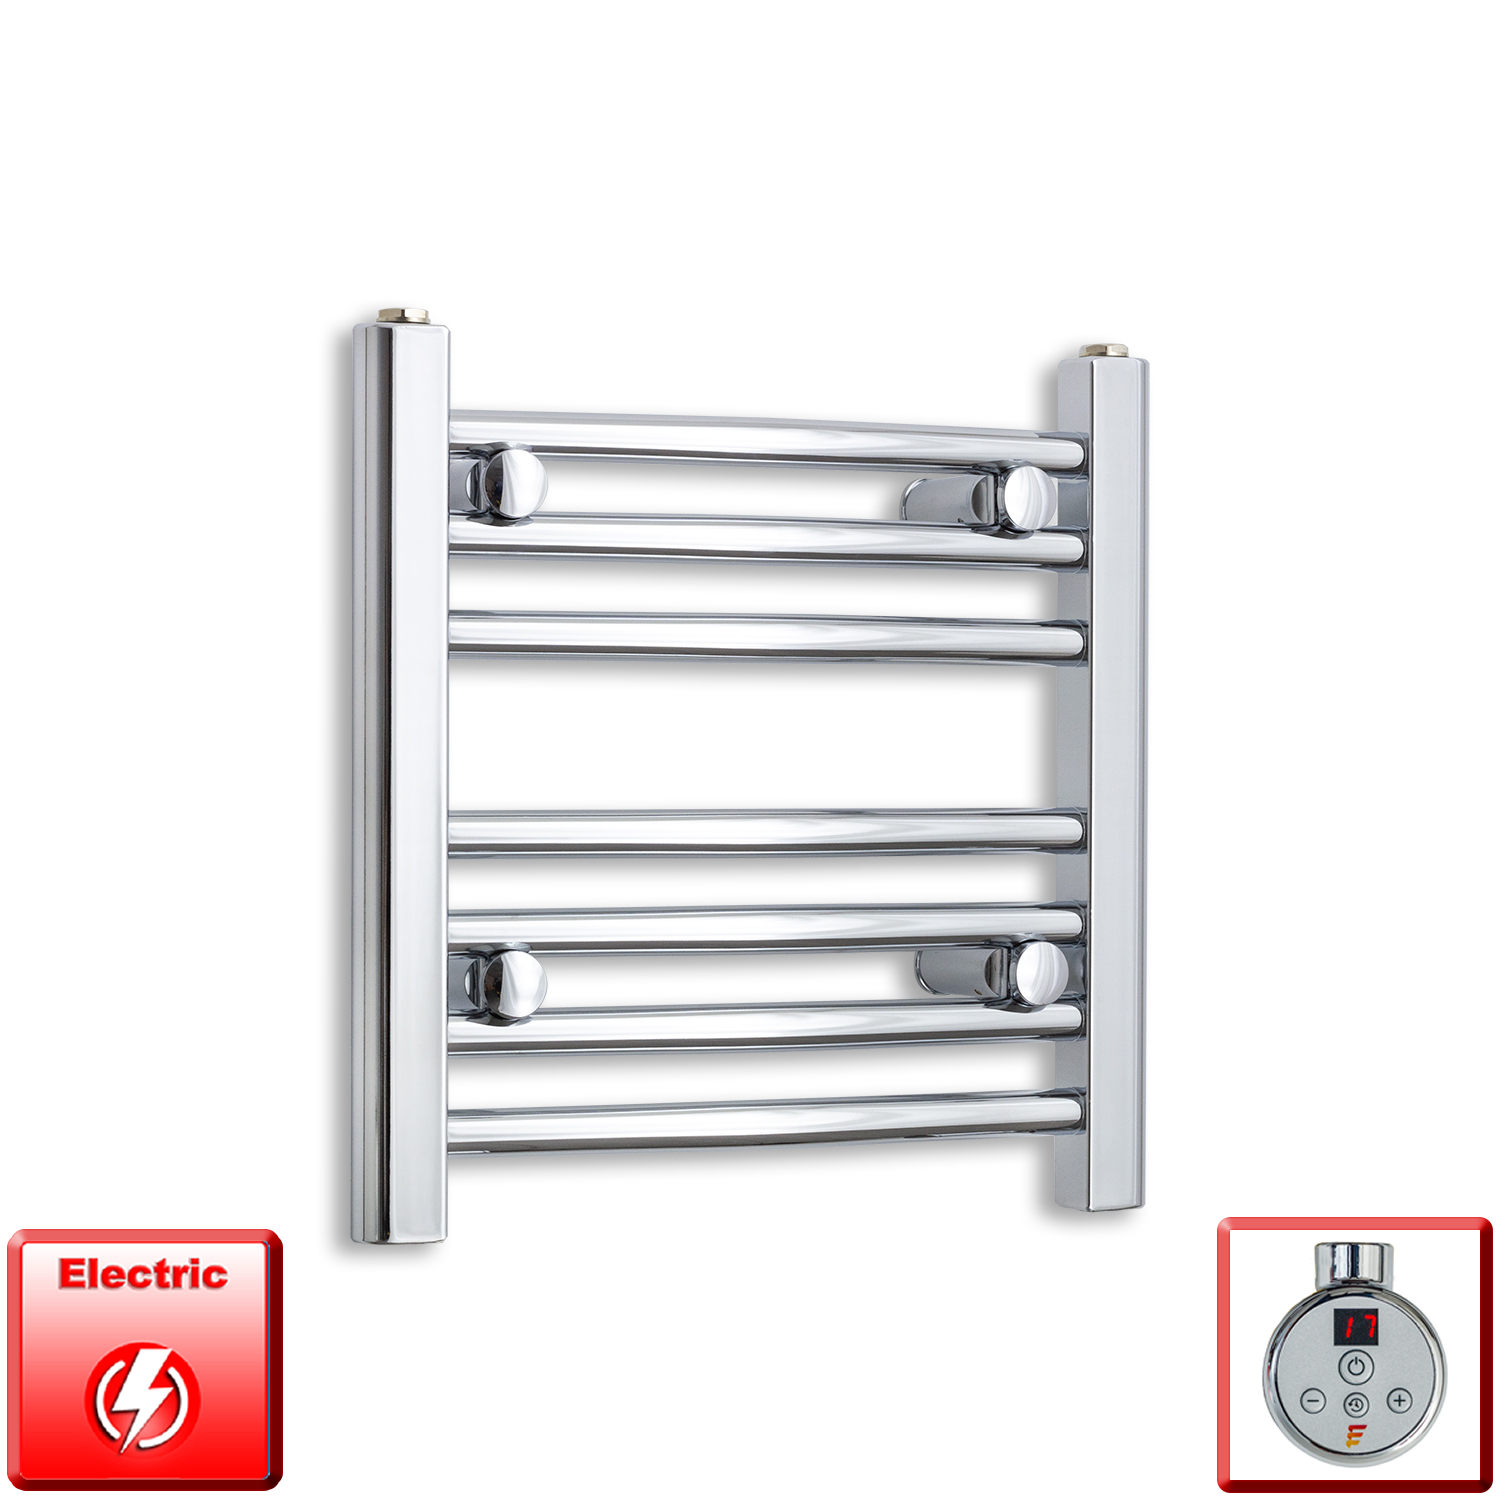 400mm High 400mm Wide Pre-Filled Electric Heated Towel Rail Radiator Straight Chrome